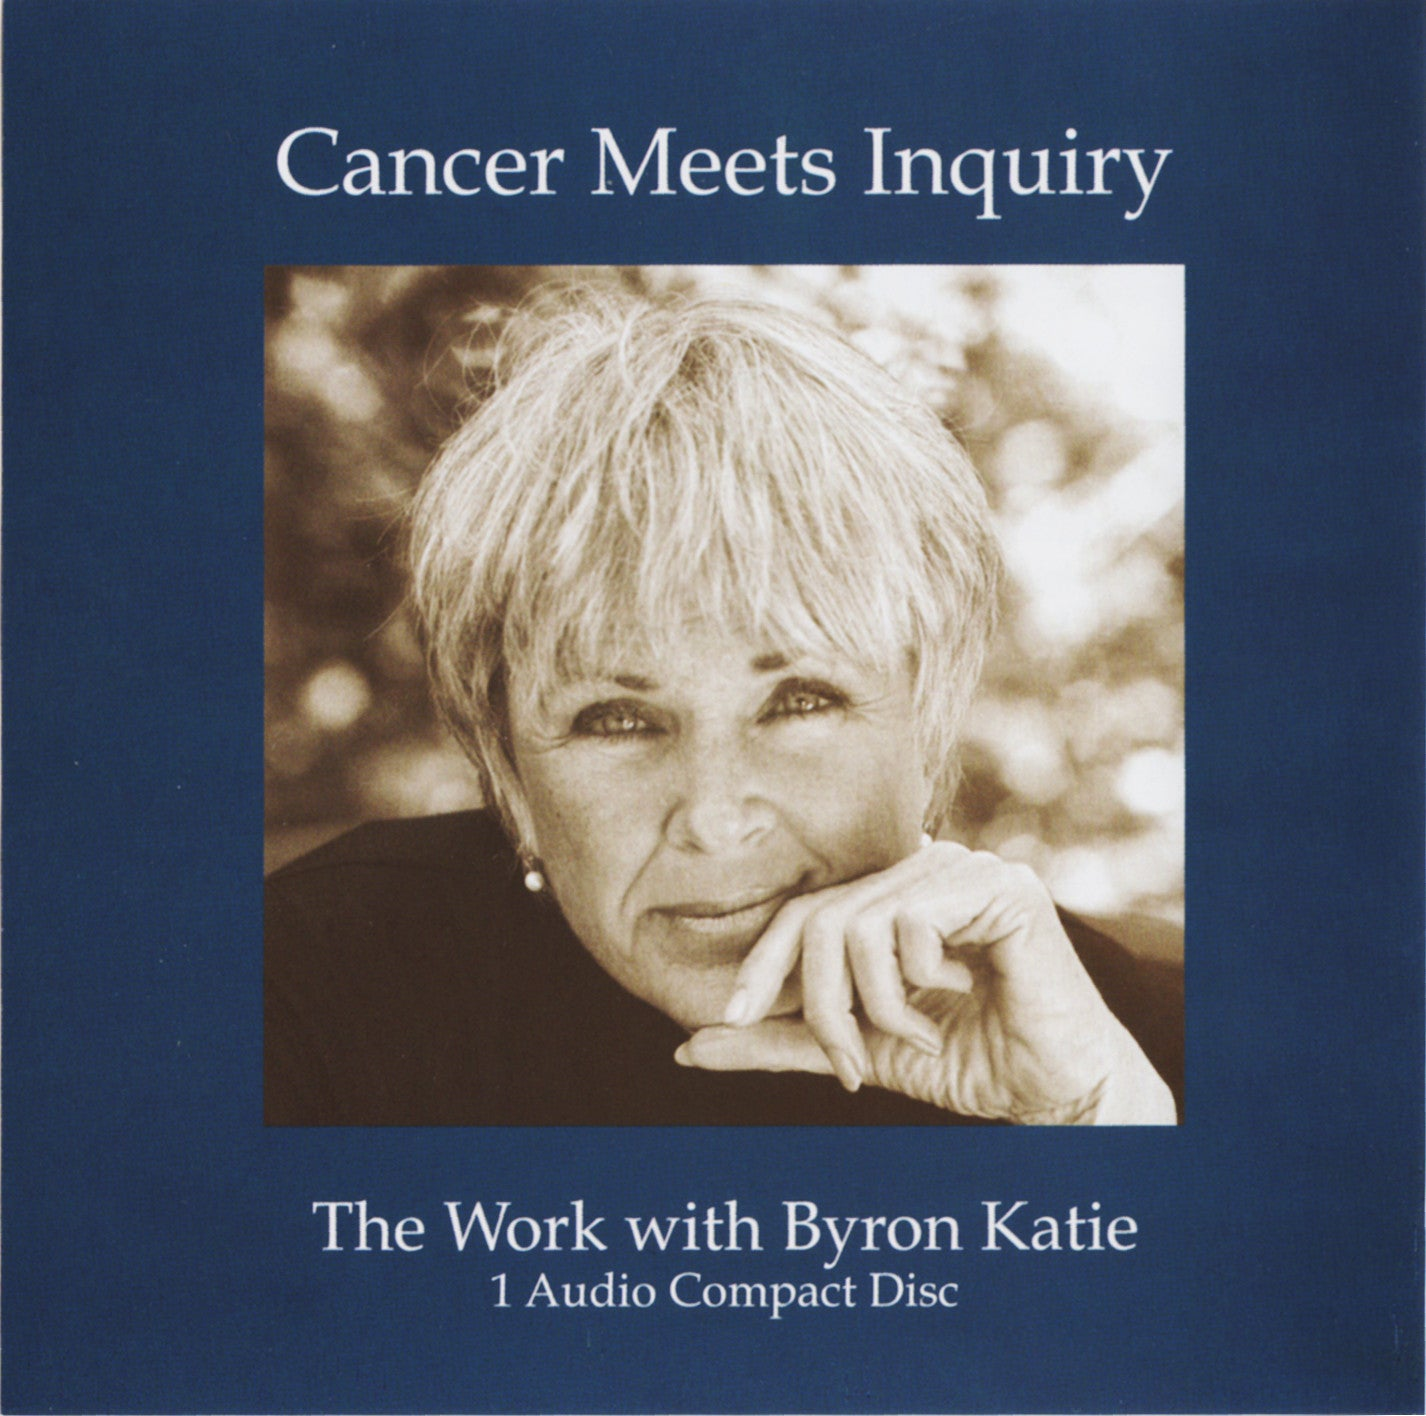 Cancer Meets Inquiry